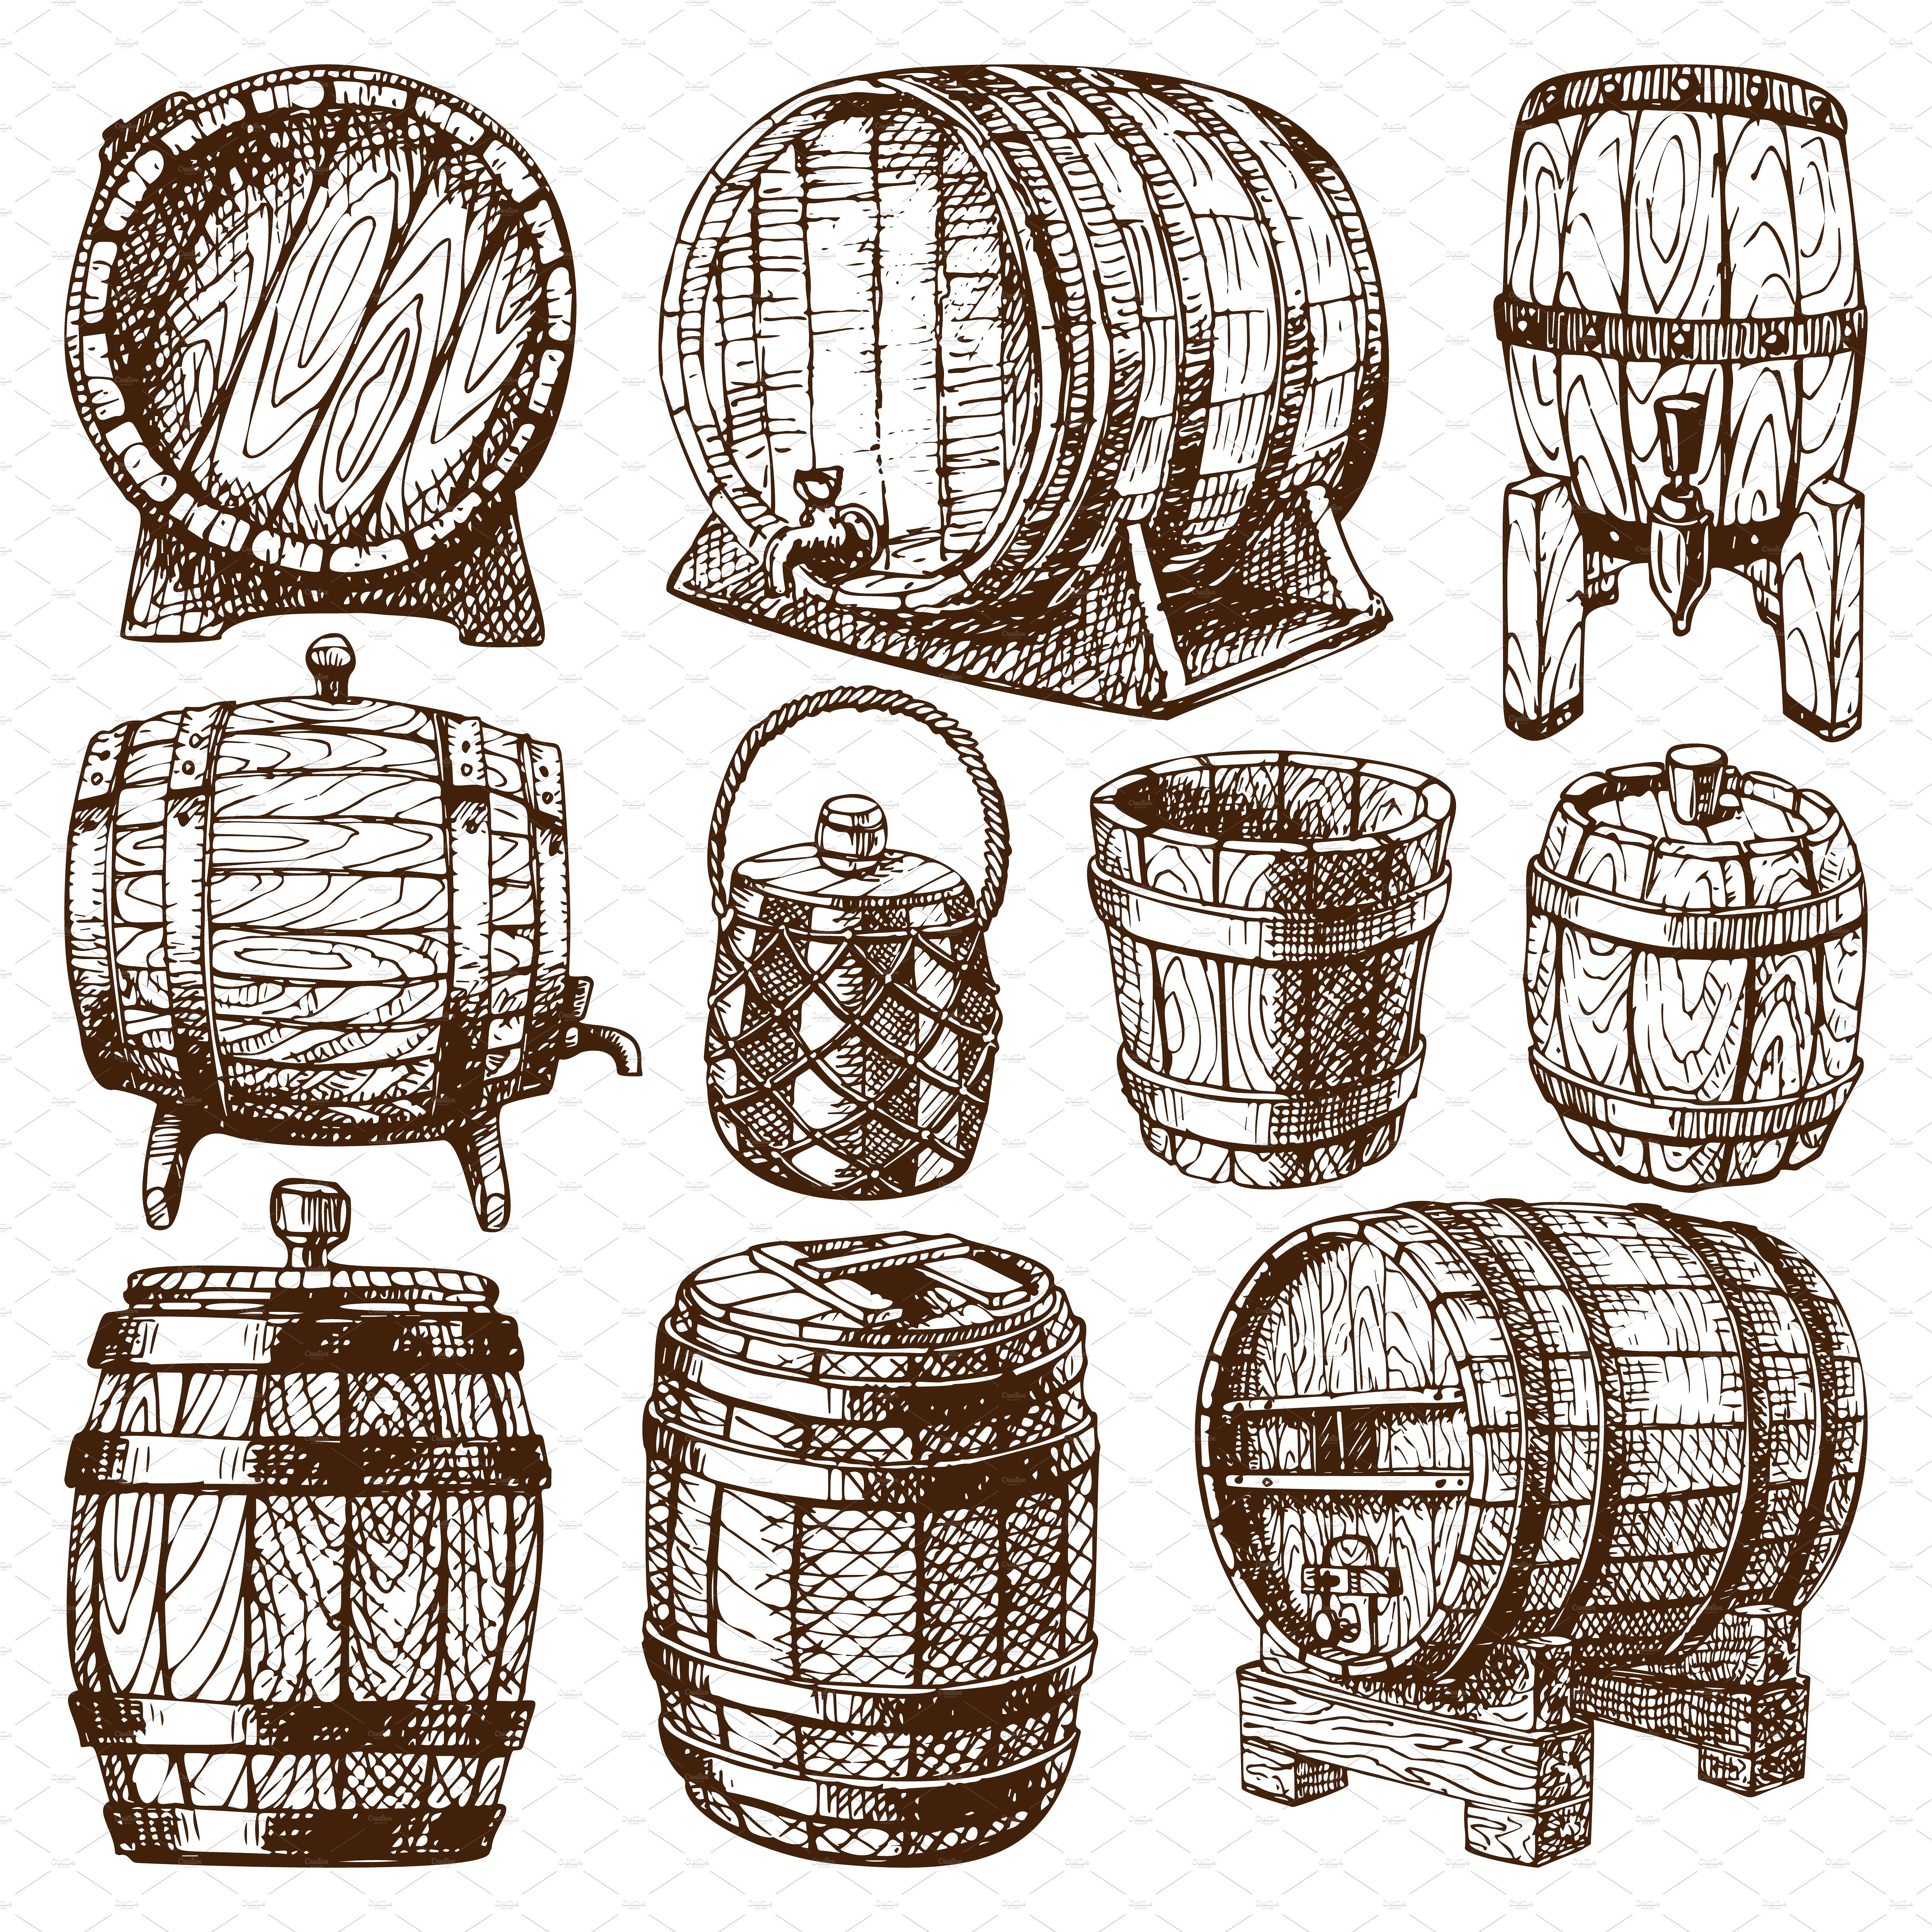 Wooden barrel vector #wooden#barrels#oak#style in 2019.